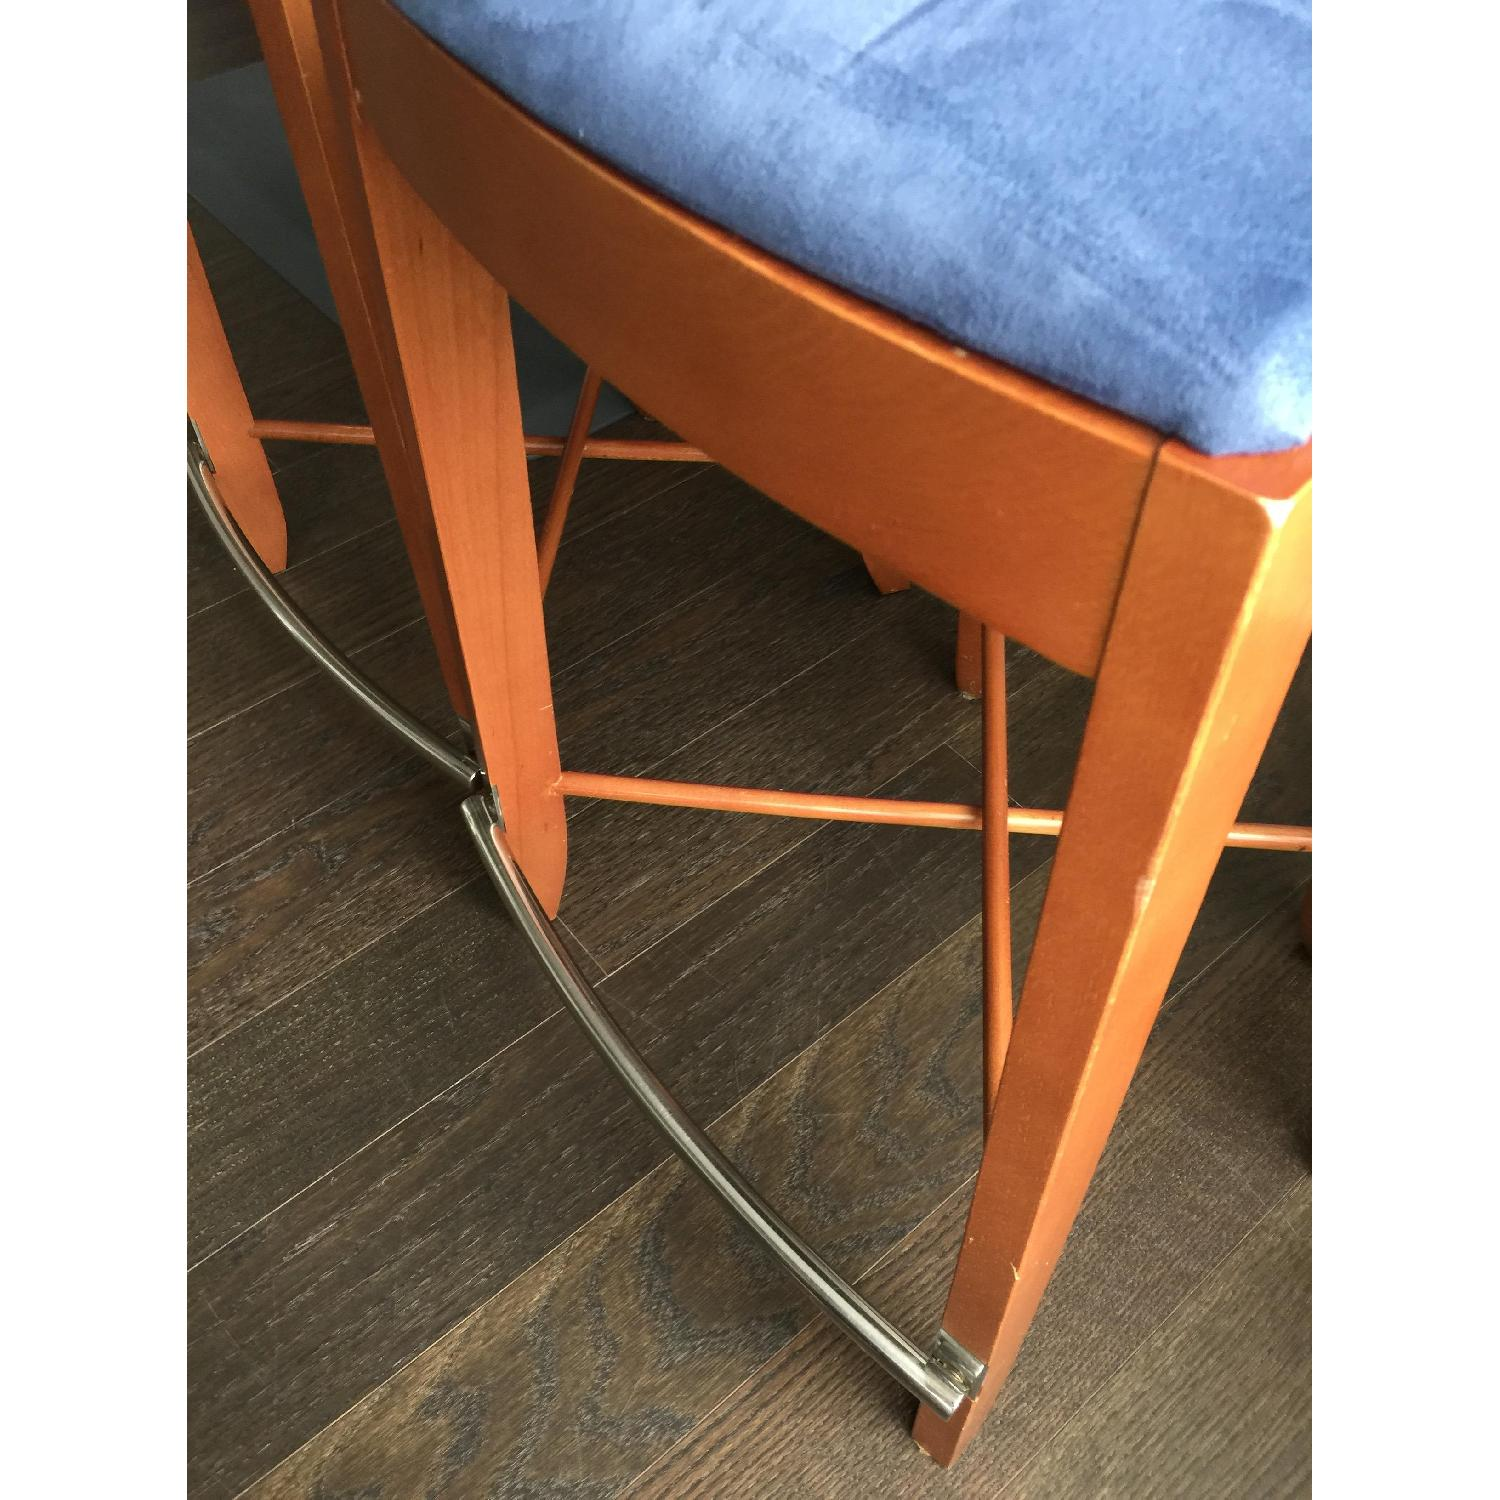 The Morson Collection Cherry Veneer & Ultrasuede Dining Stools - image-11